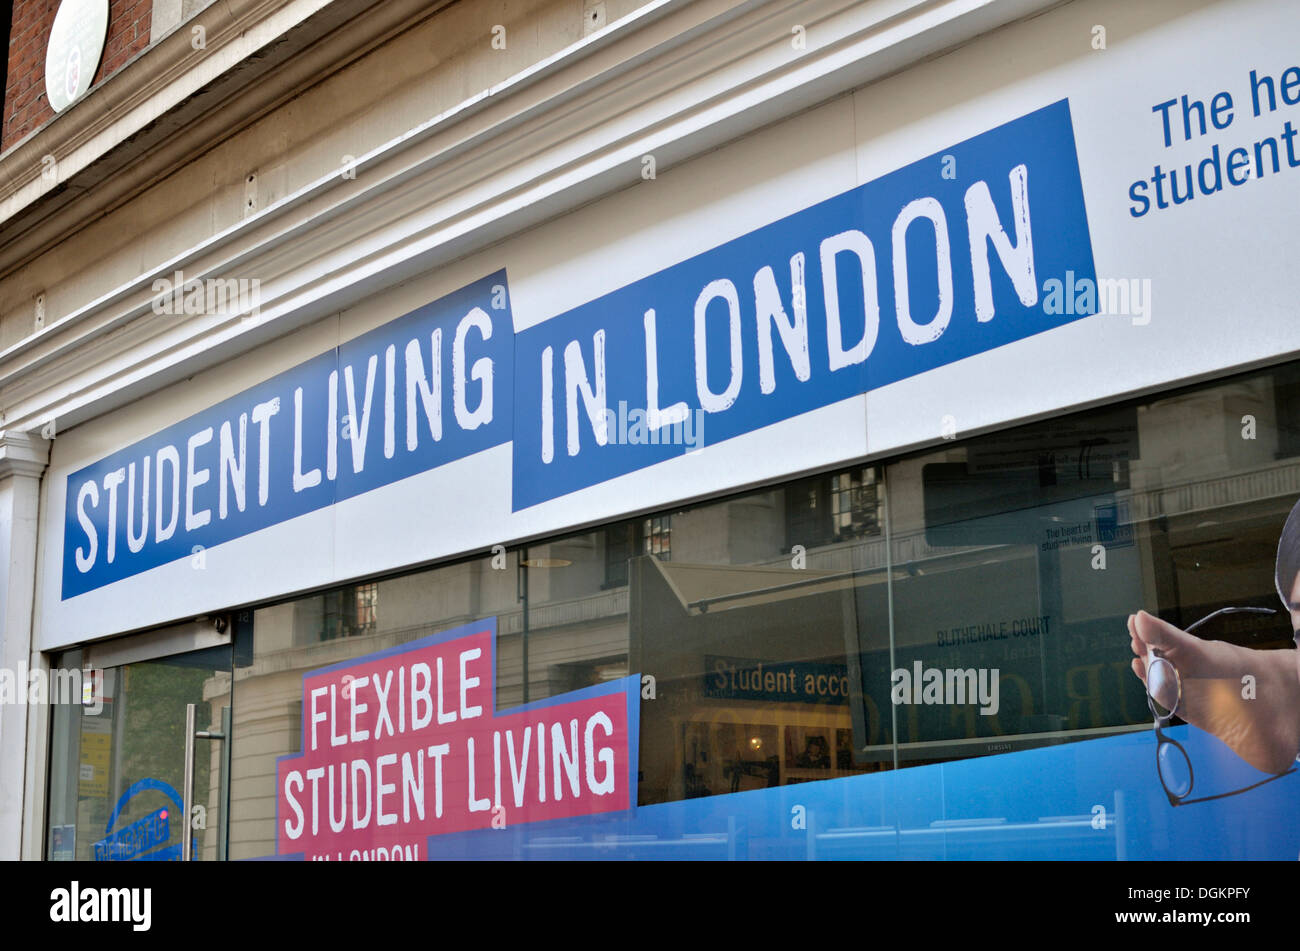 Unite Student Living in London letting agent on Southampton Row. - Stock Image